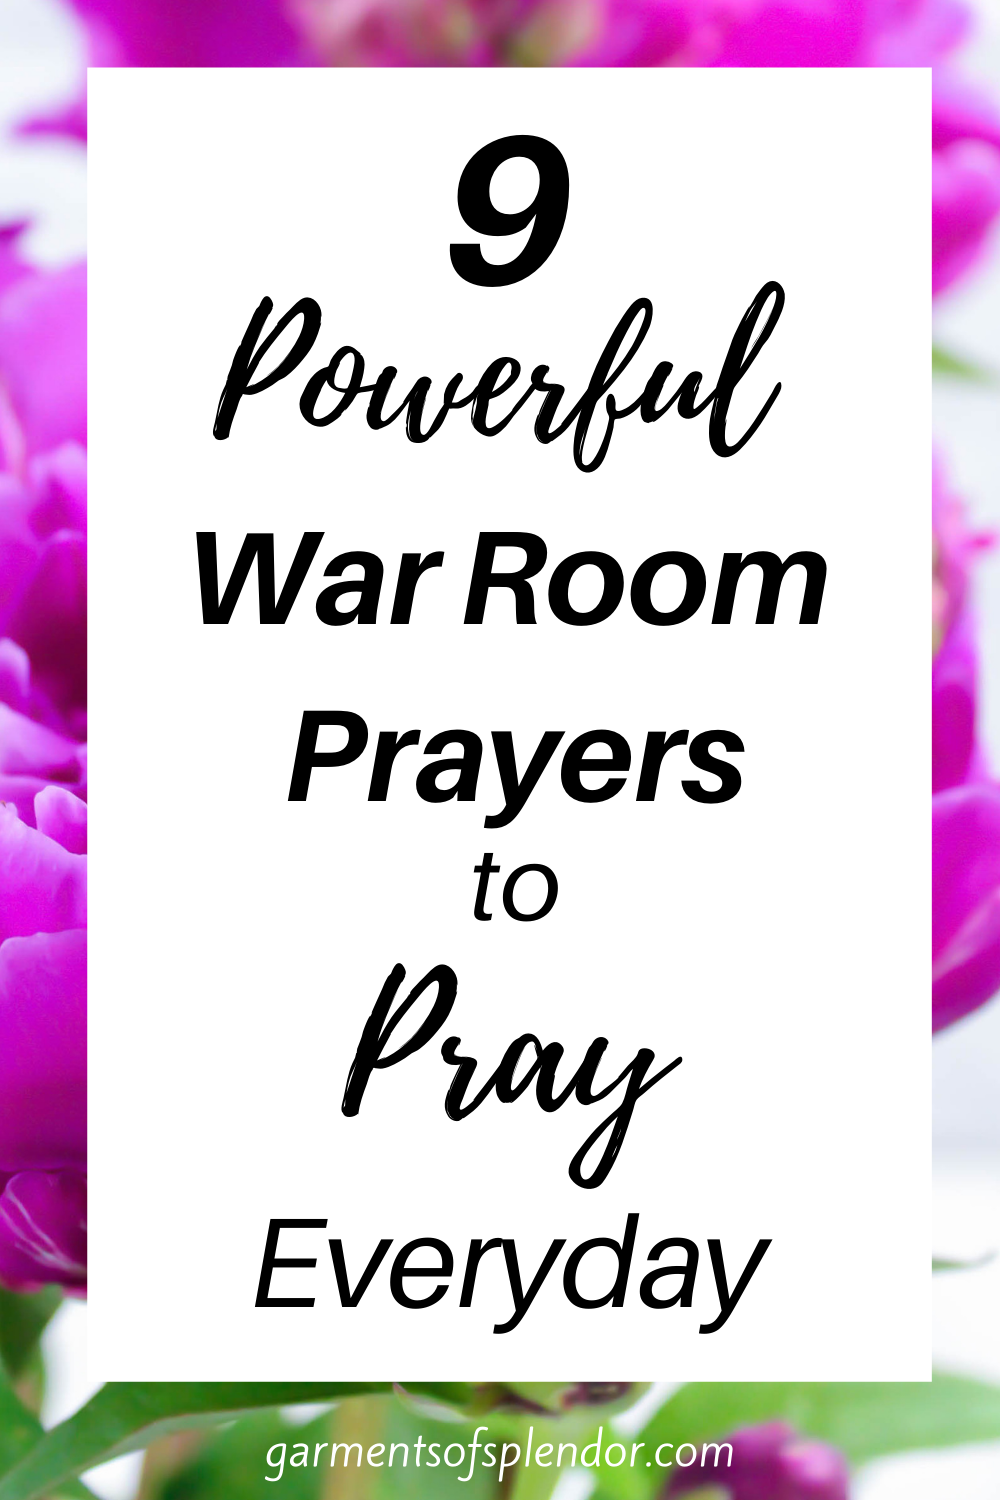 9 Powerful War Room Prayers to Pray Everyday